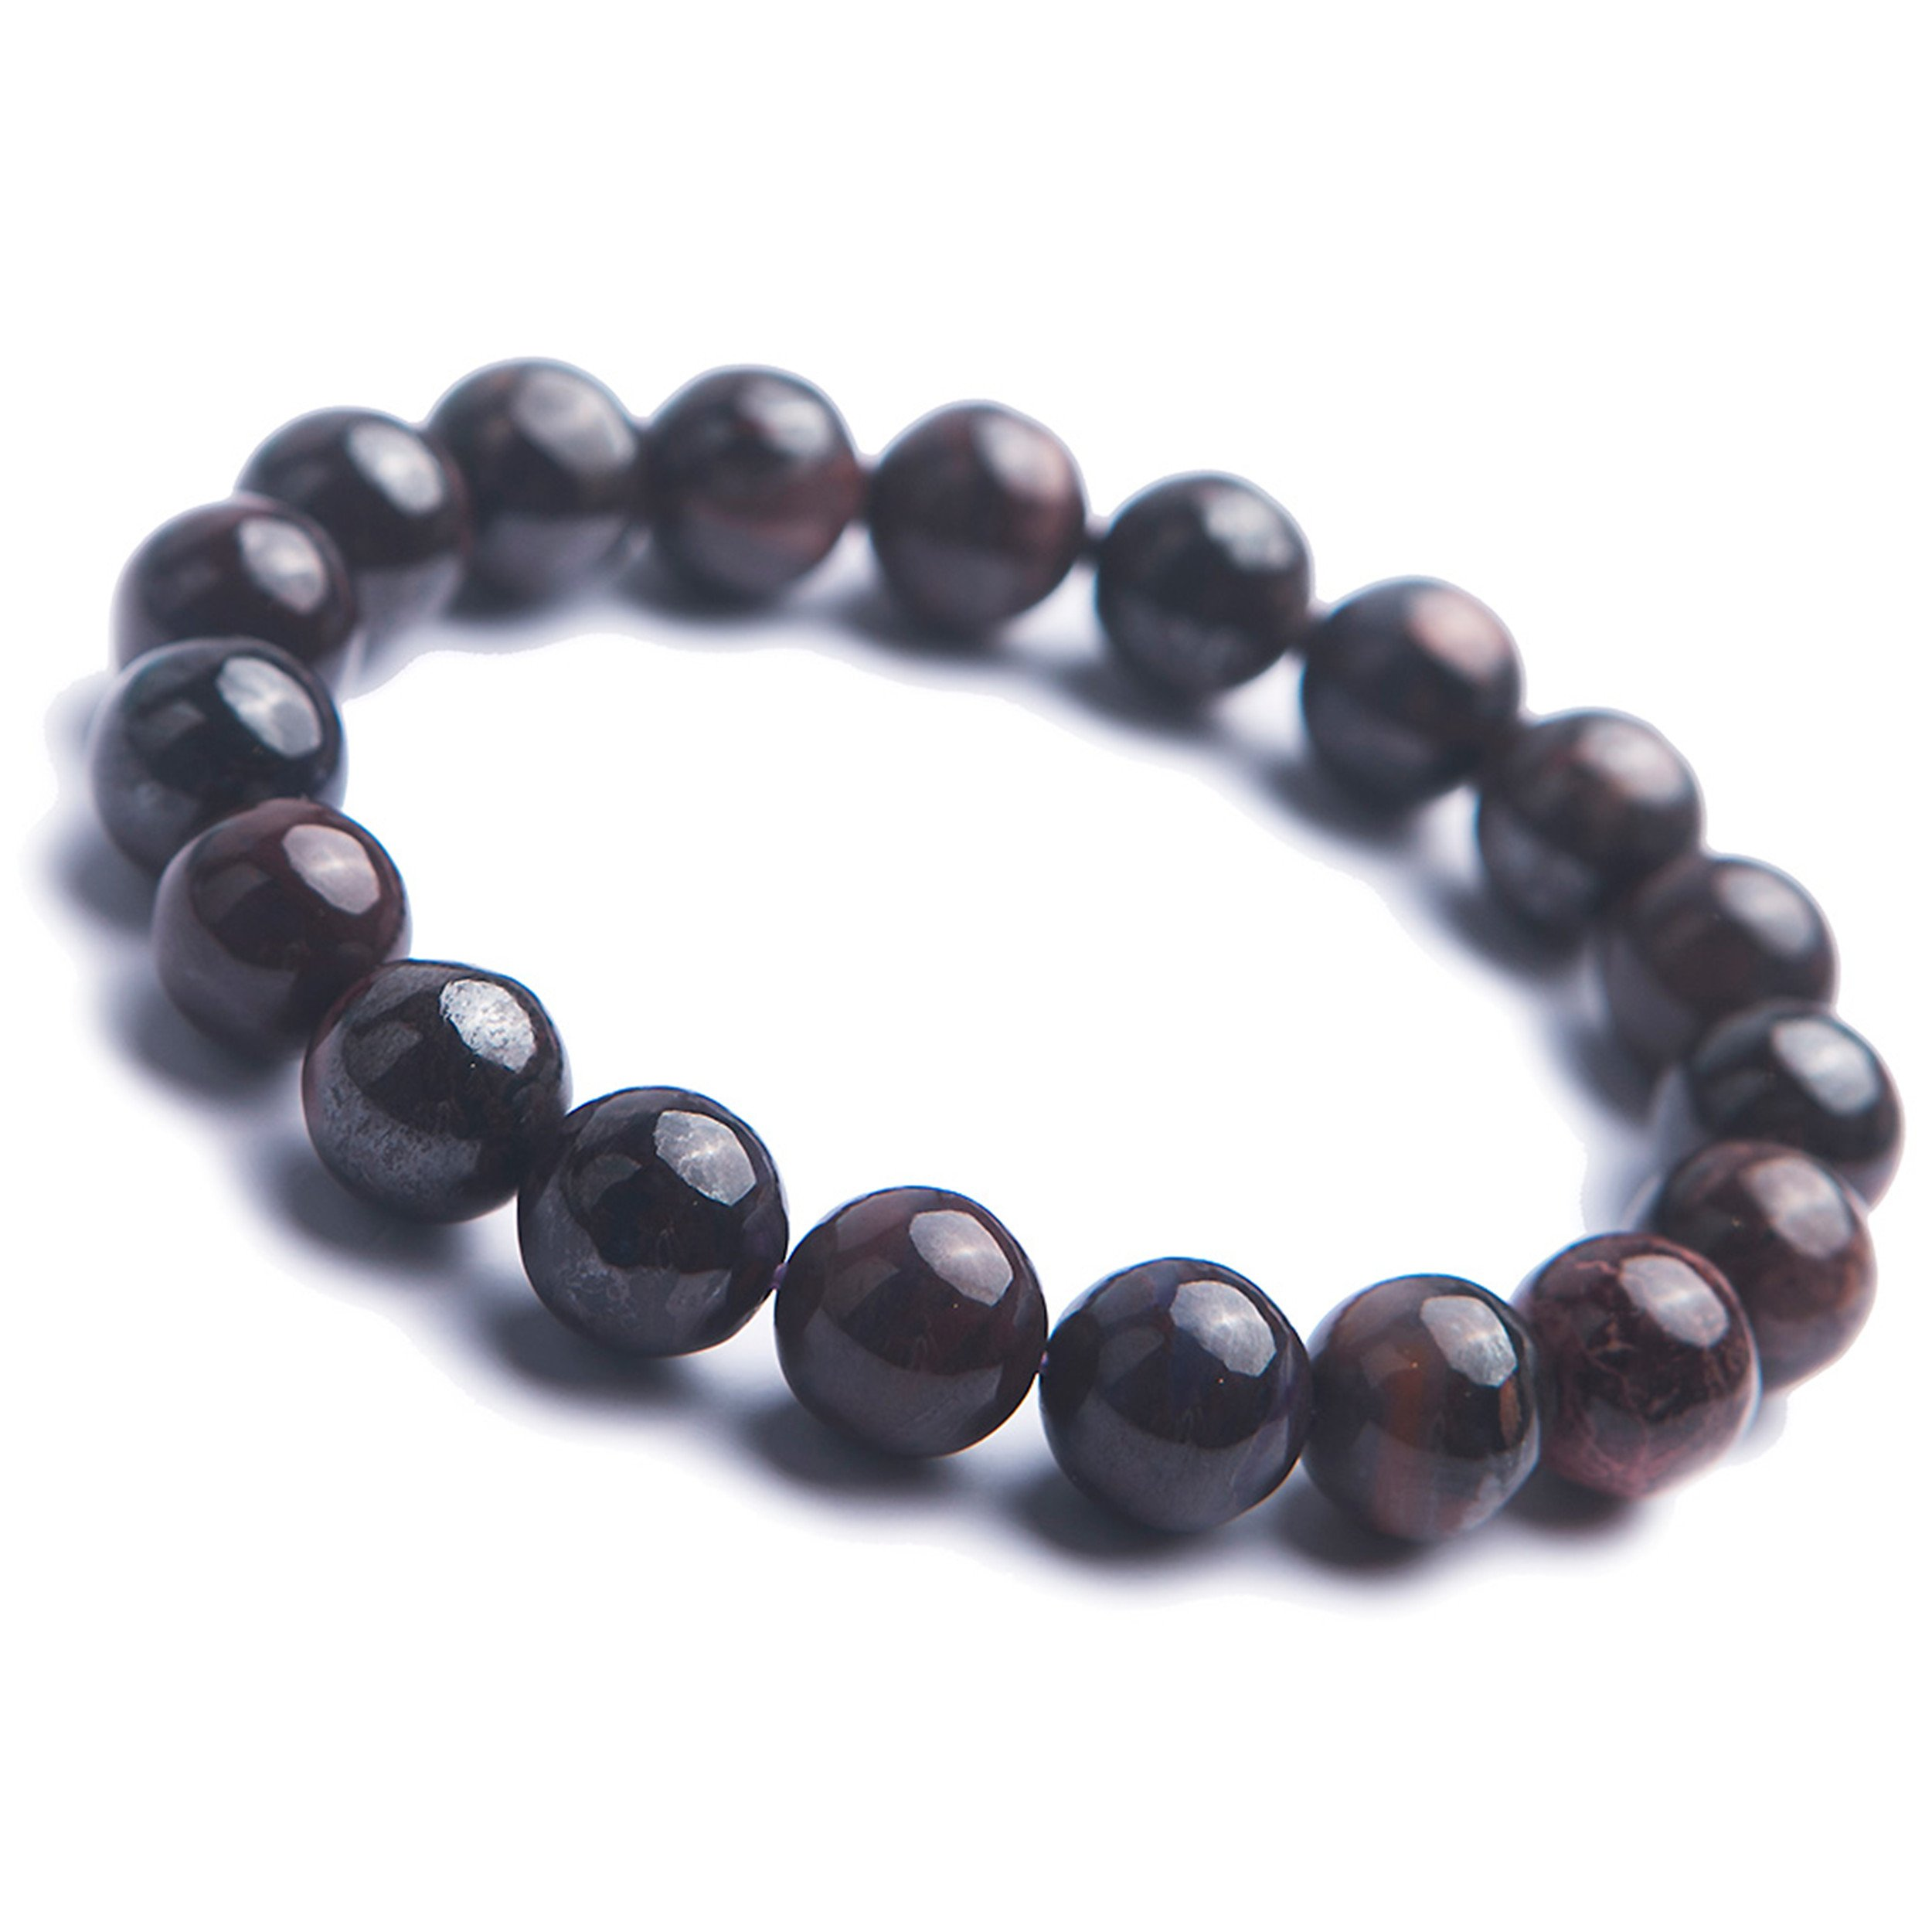 LiZiFang 10.5mm Natural Sugilite Gemstone Crystal Stretch Round Bead Woman Bracelet